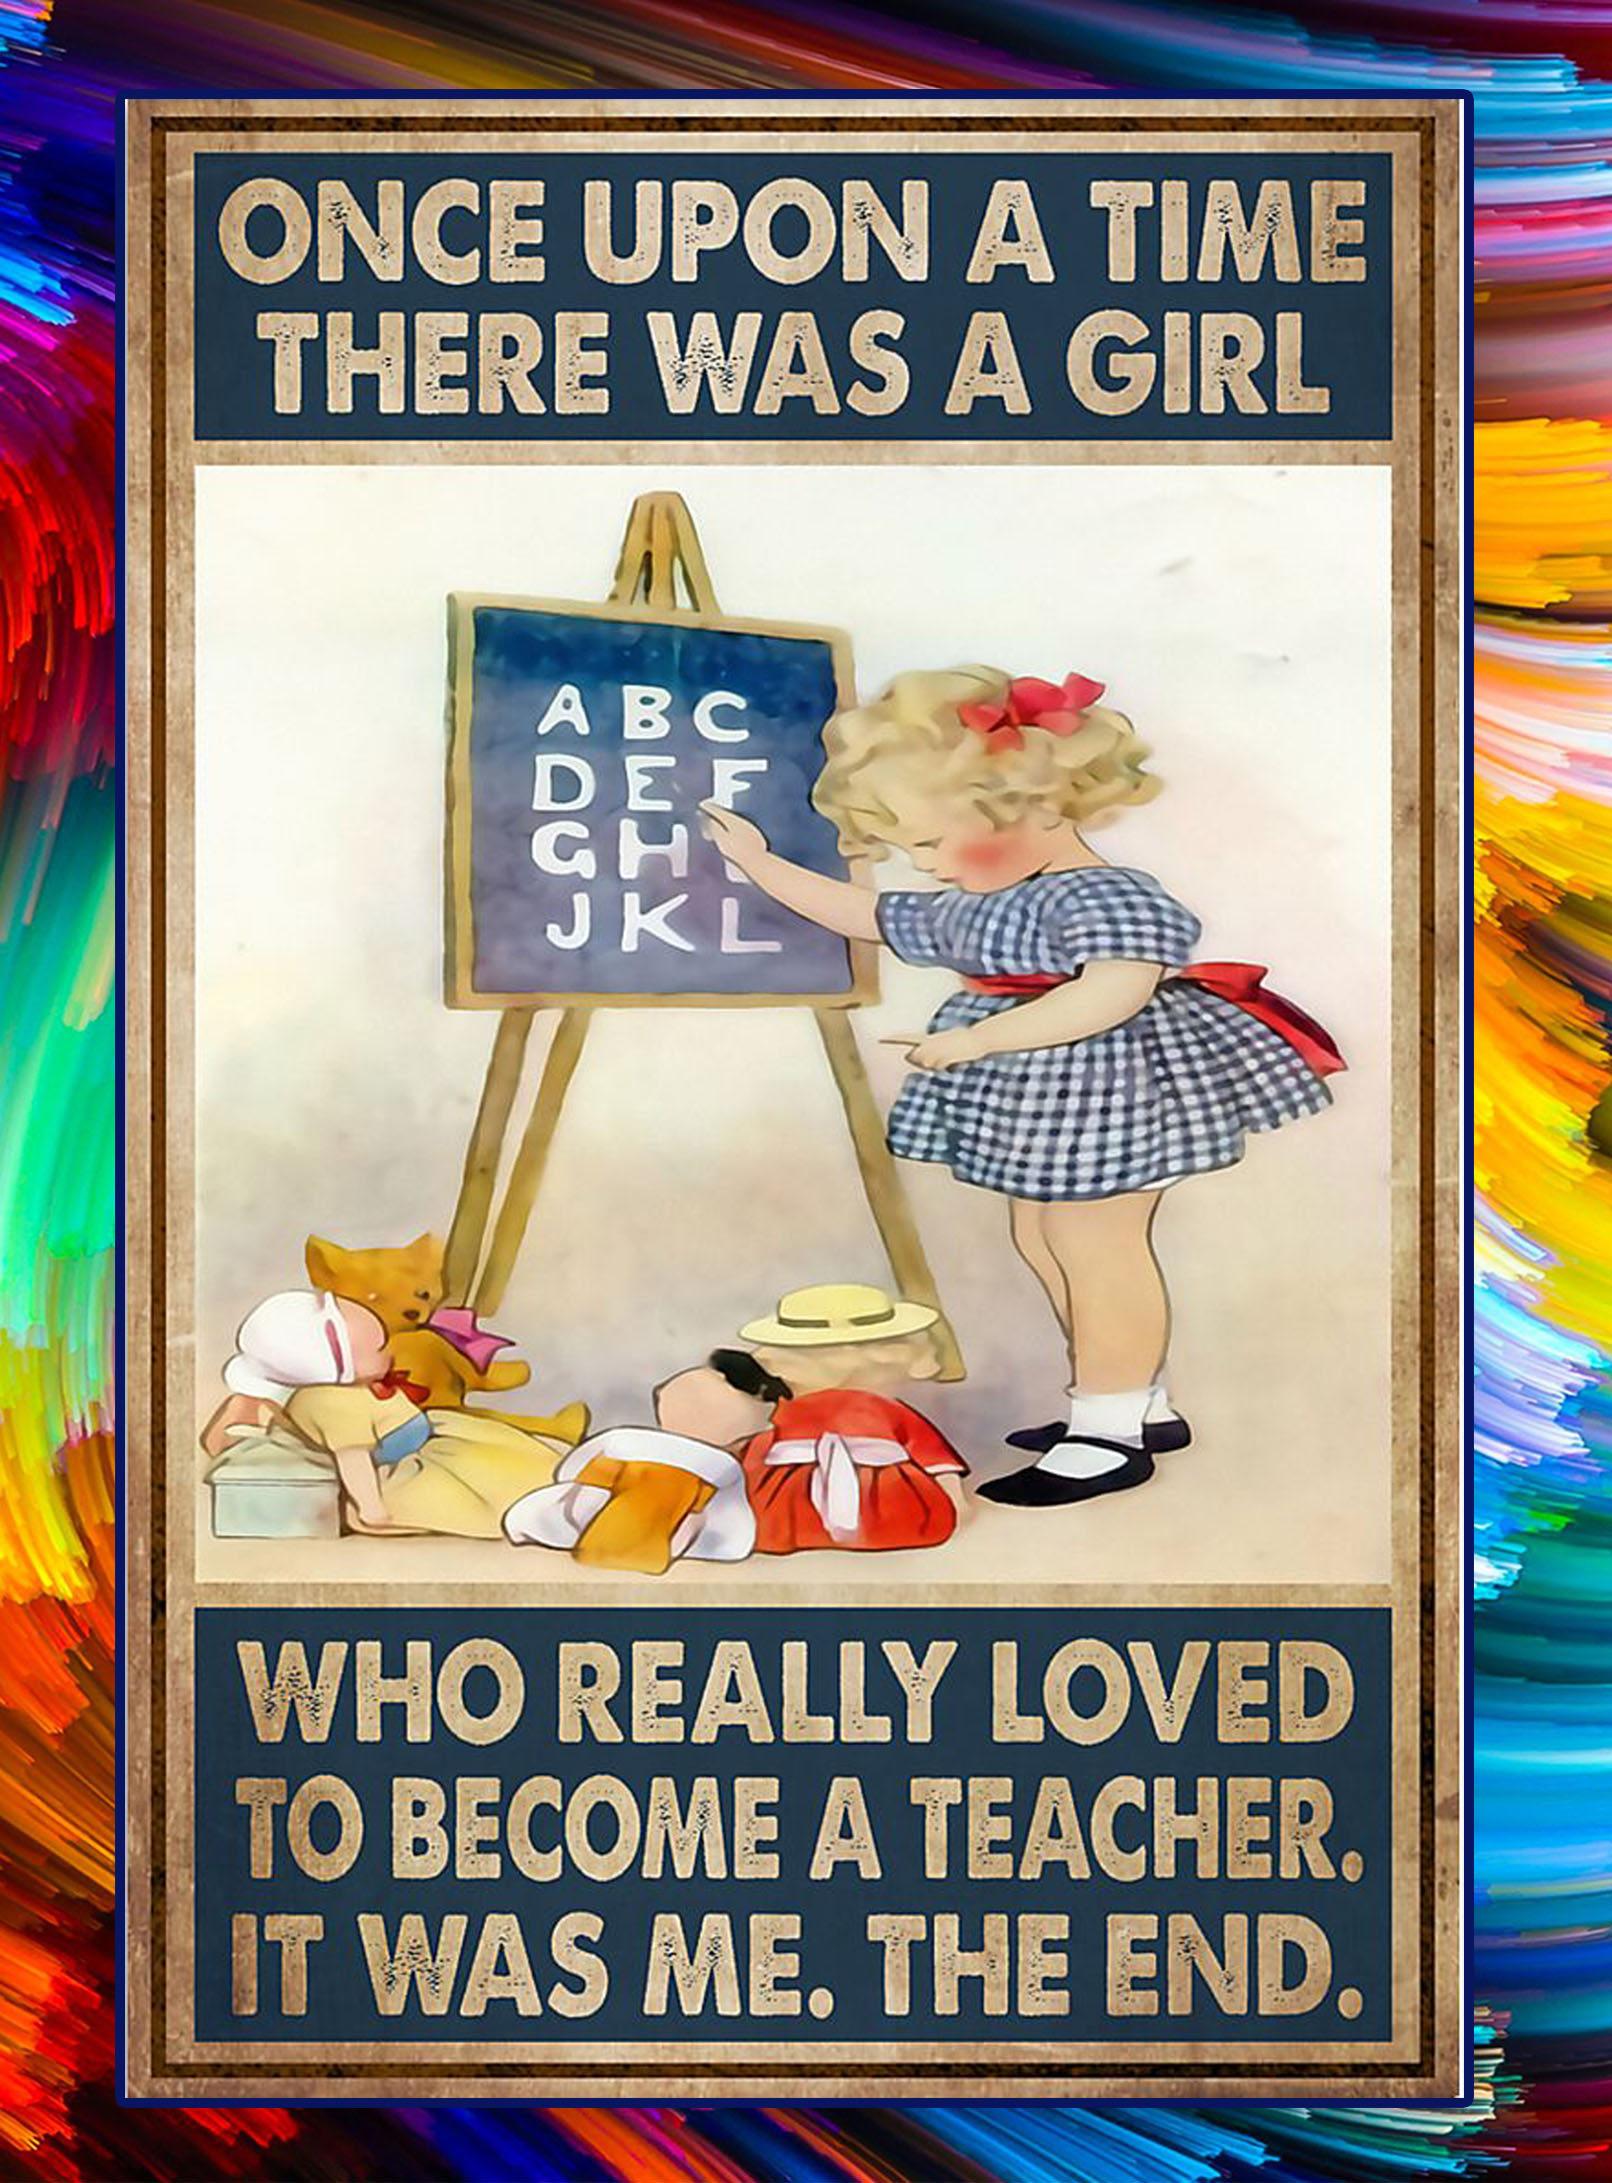 Once upon a time there was a girl who really loved to become a teacher poster - A4